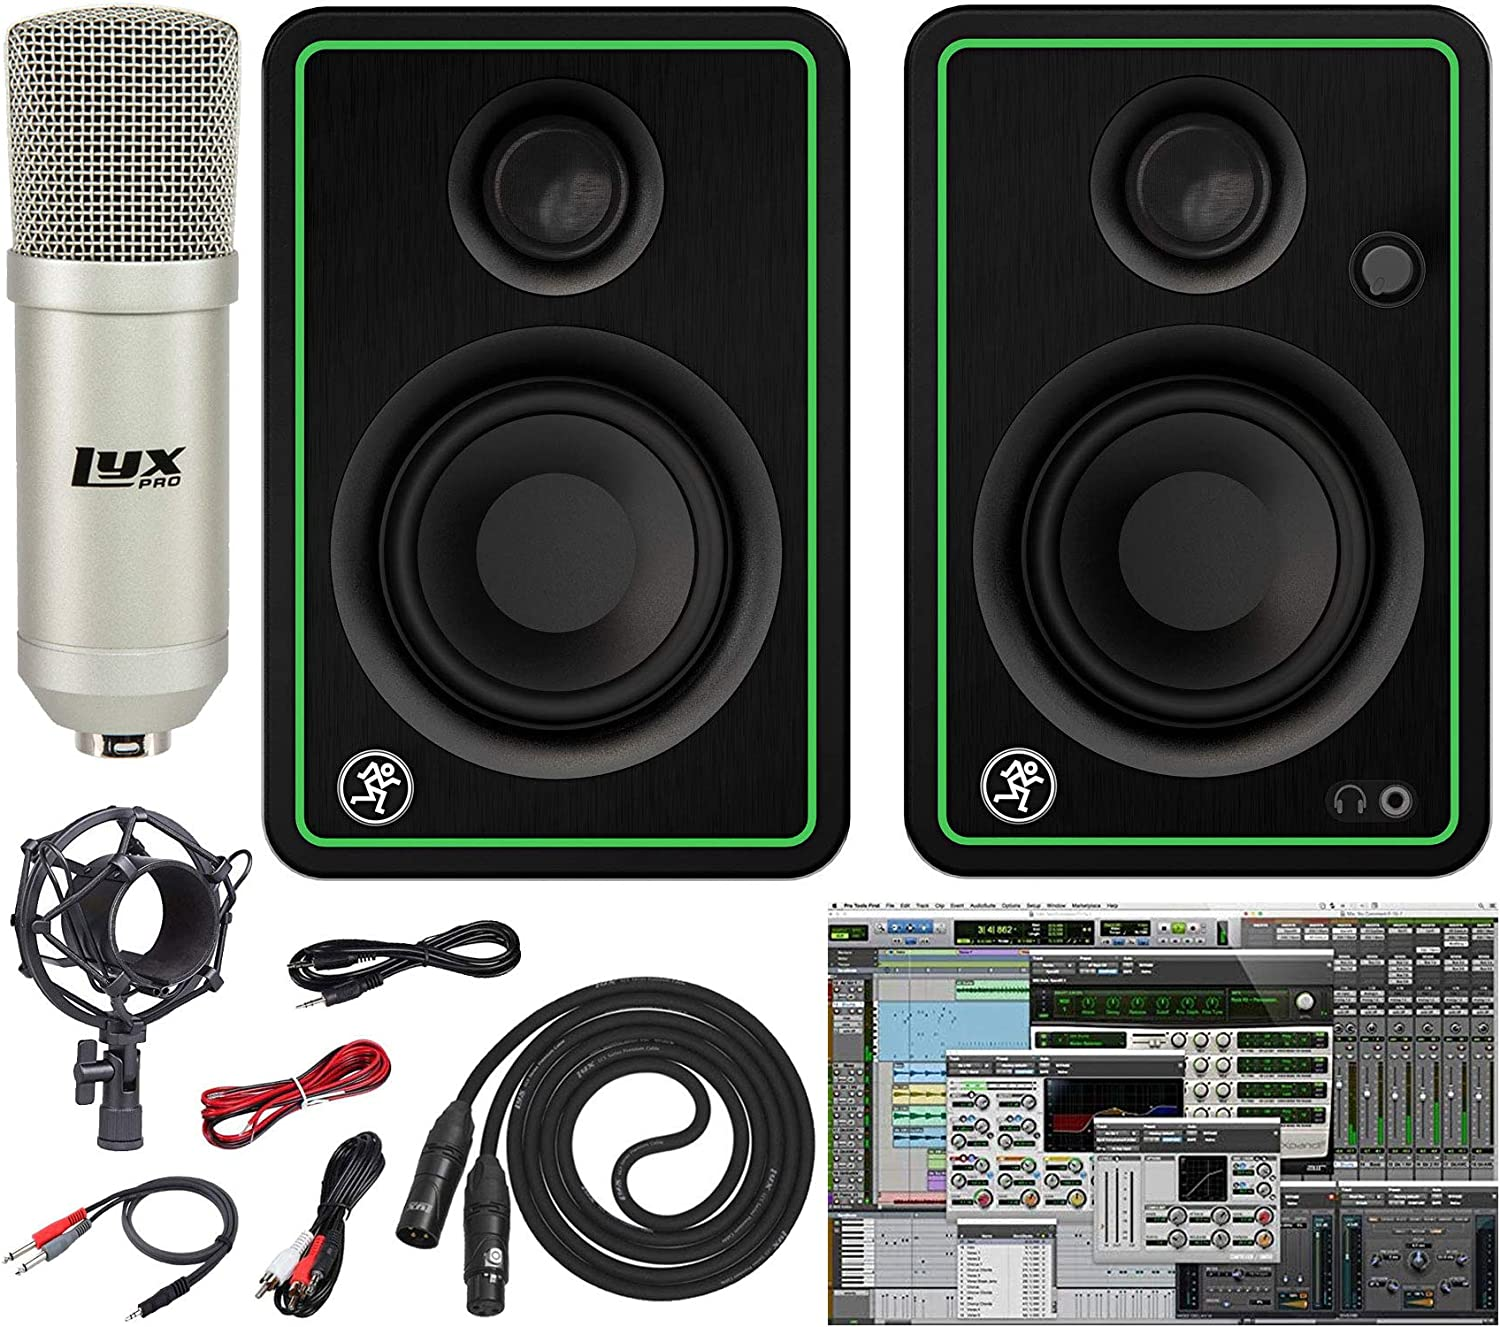 Mackie CR3-X 3-Inch Creative Reference Multimedia Monitors with Professional Recording Microphone and Pro Cable Kit Featuring Pro Tools First DAW Music Editing Software